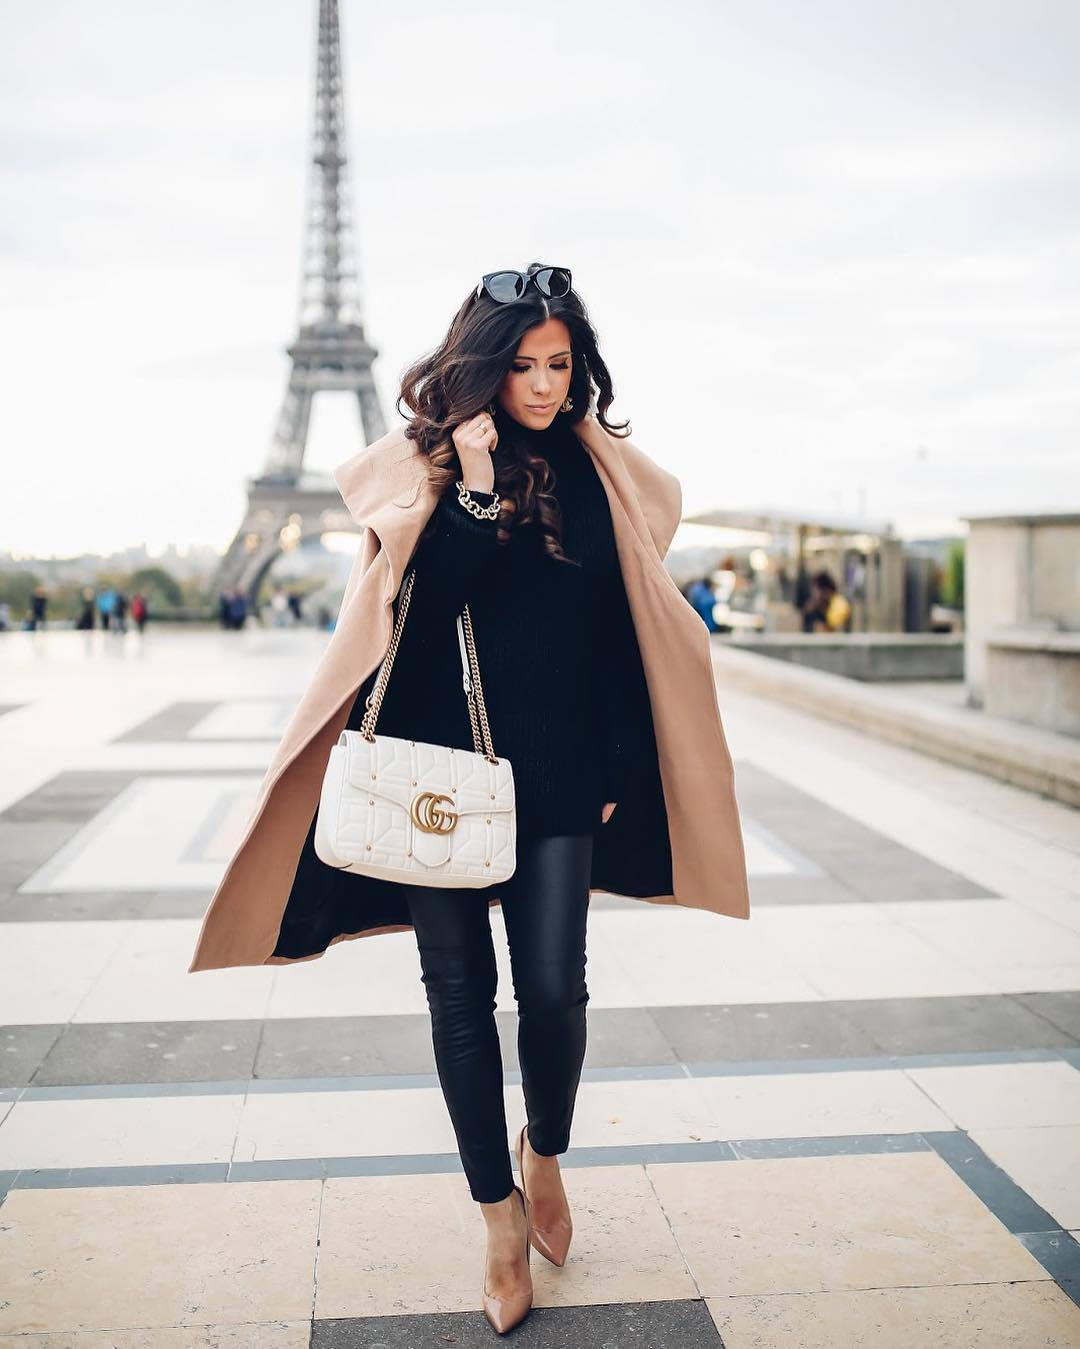 Paris Winter Fashion: Our Paris Trip In Review (Where We Stayed, Ate, Shopped